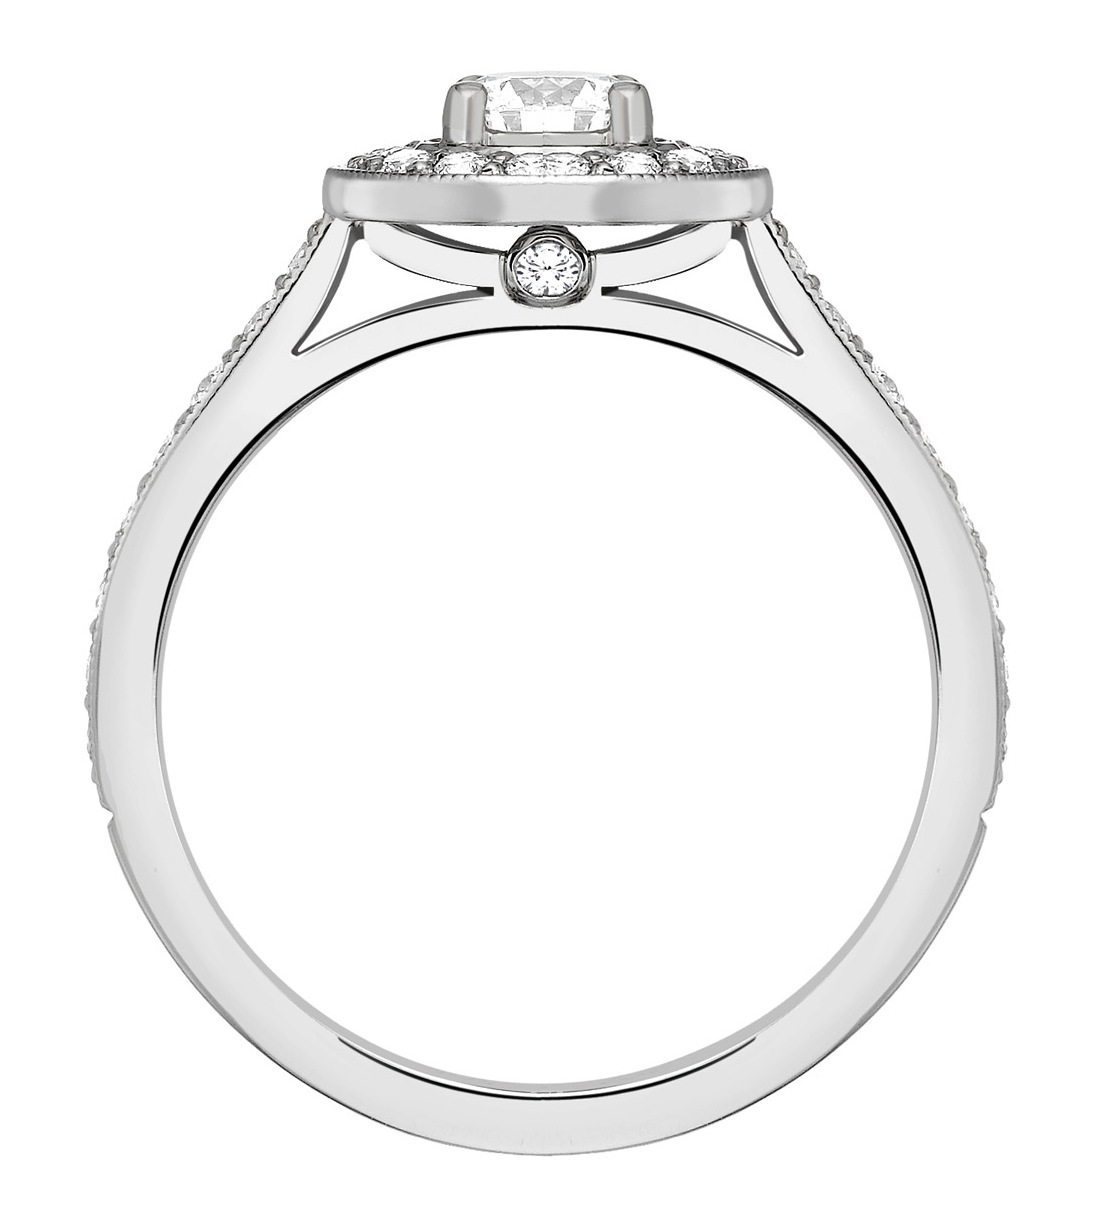 Round 0.25ct Platinum Halo Diamond Engagement Ring GRC639PLT Image 2